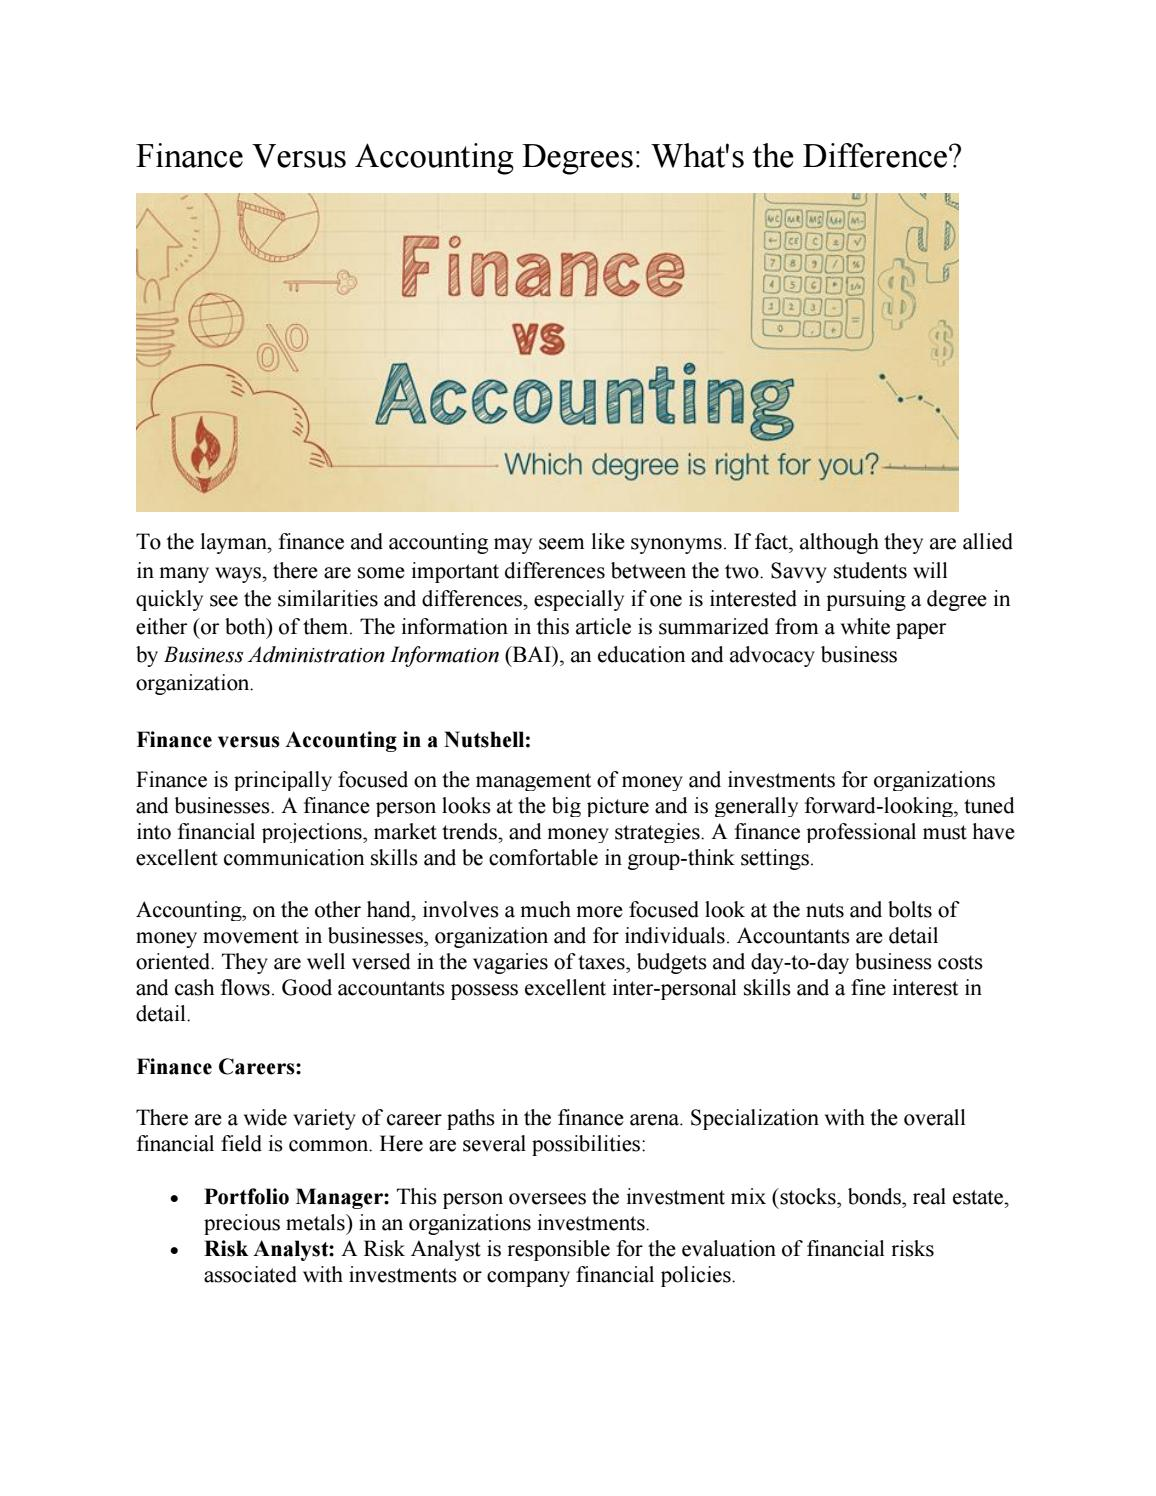 Finance Versus Accounting Degrees: What's the Difference? by